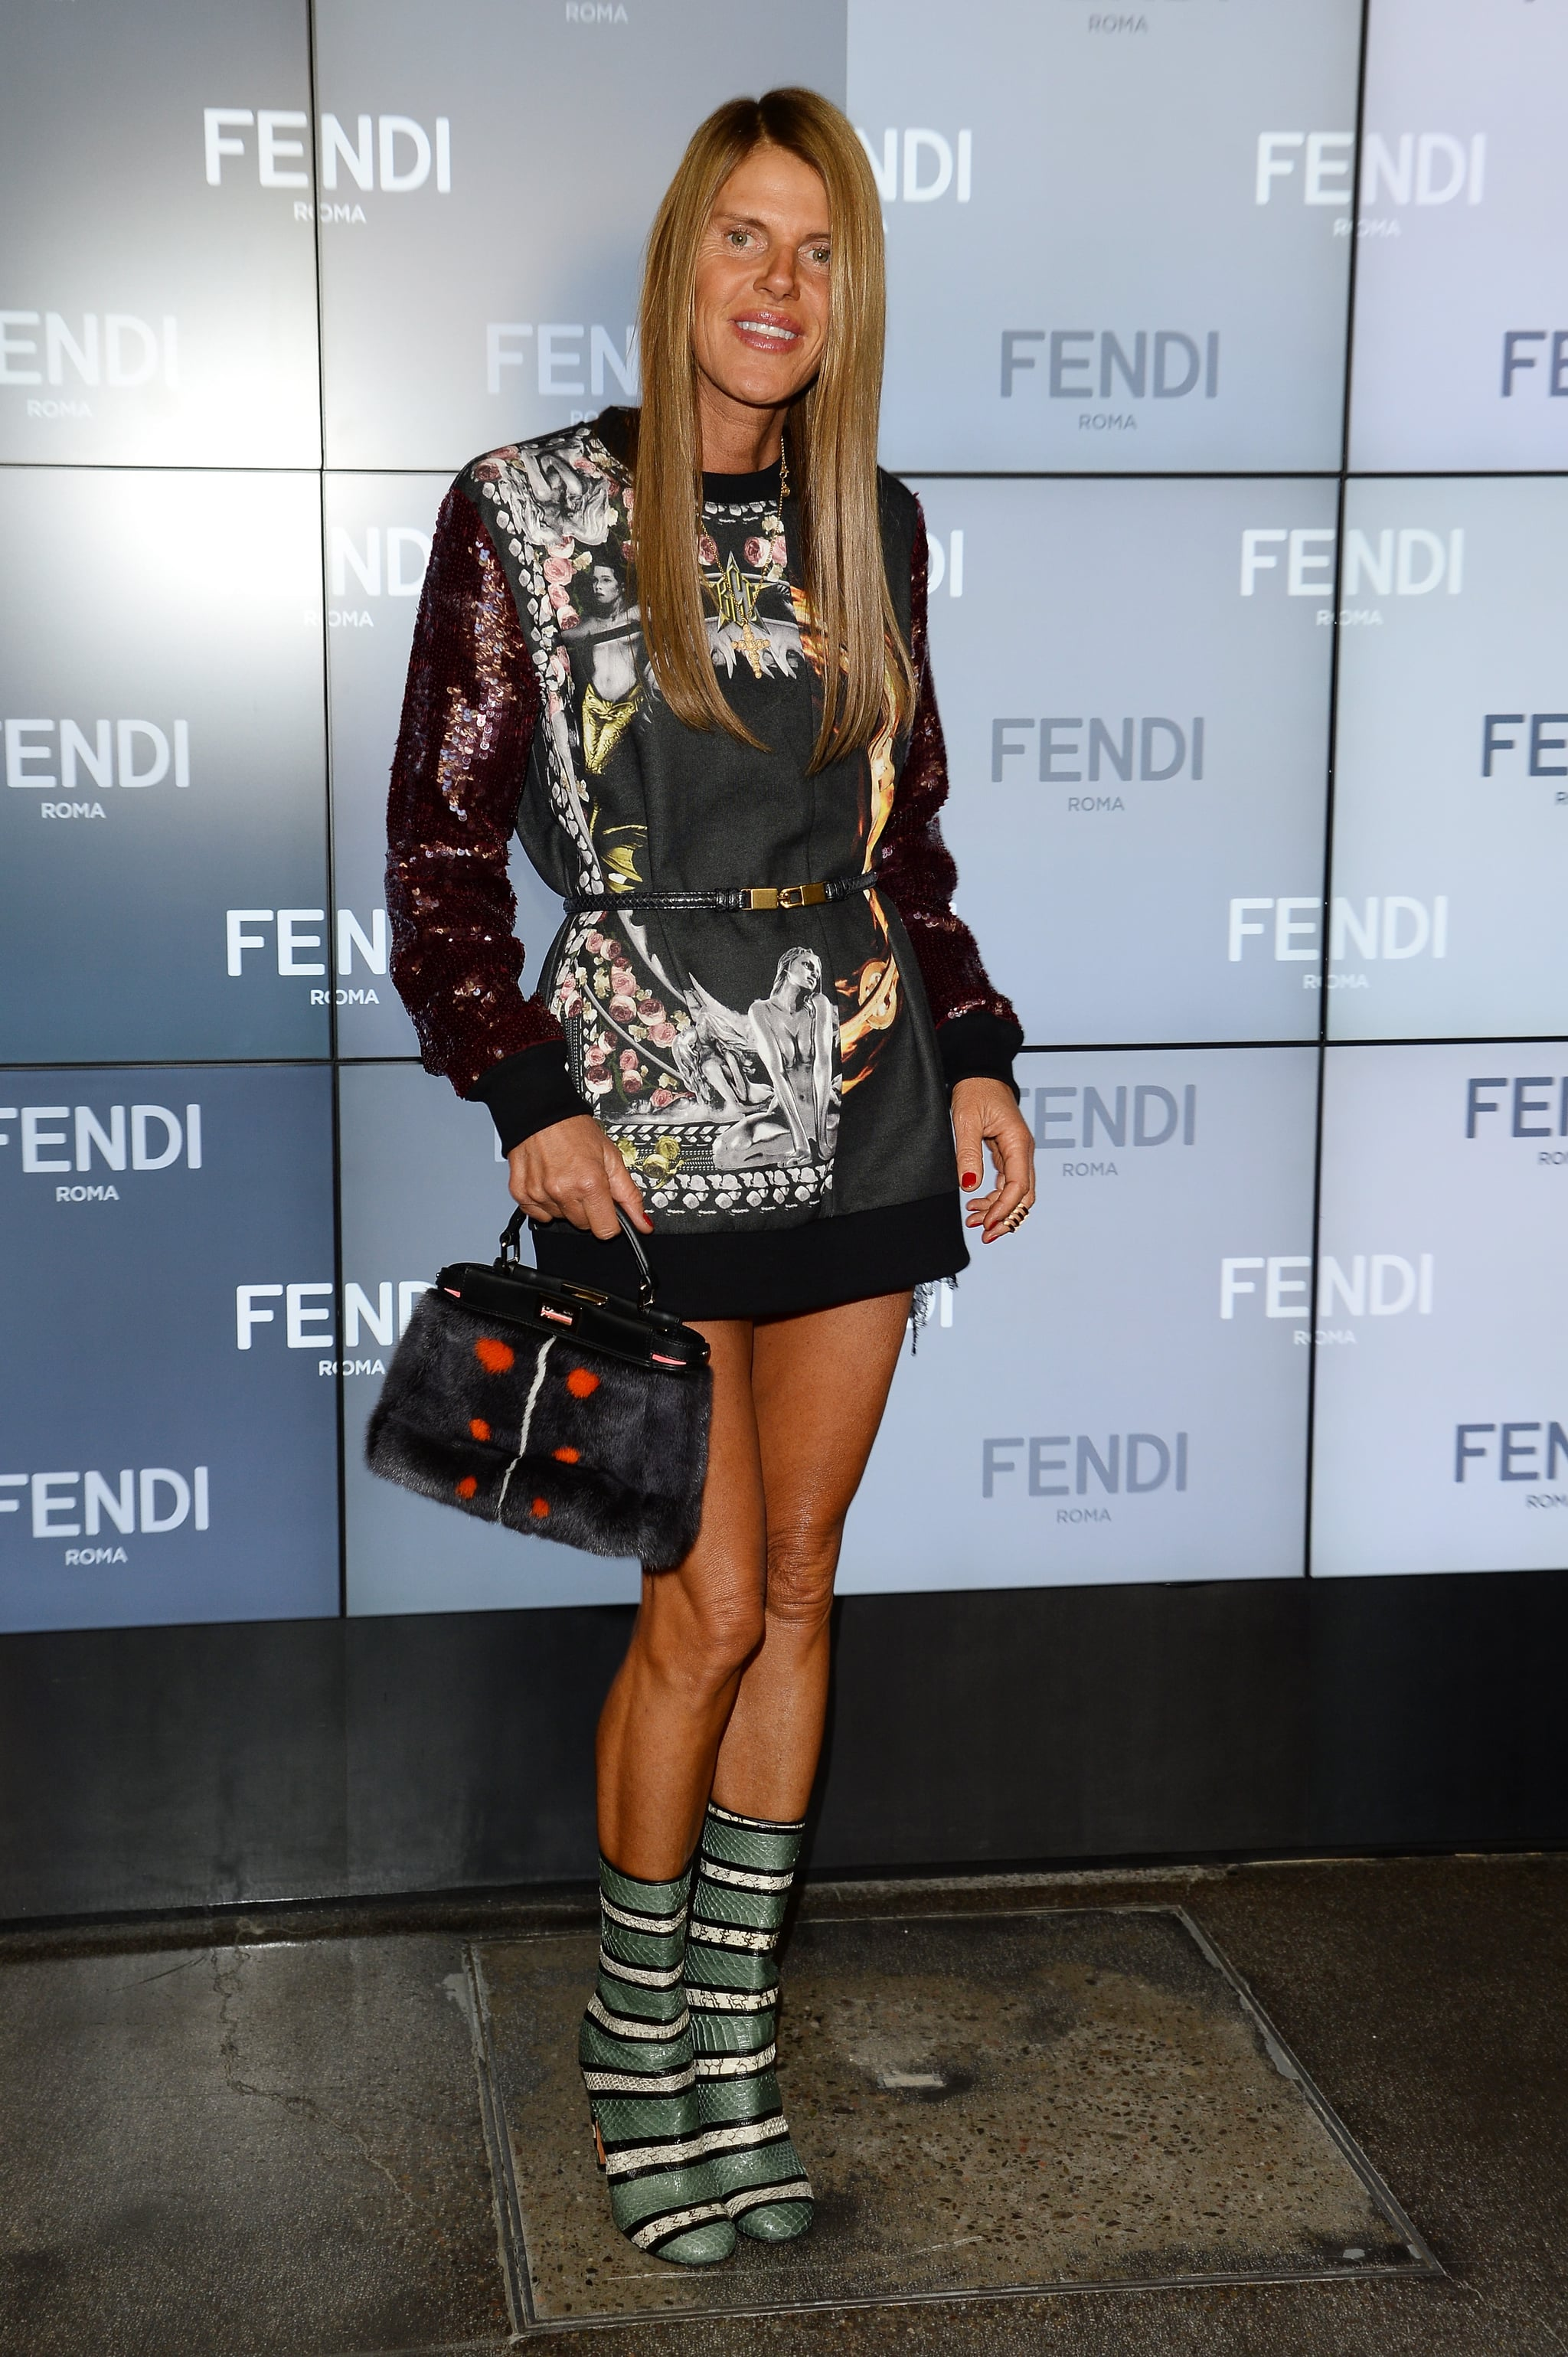 Anna Dello Russo mixed and matched like a pro in her bold bag and boots at the Fendi show.